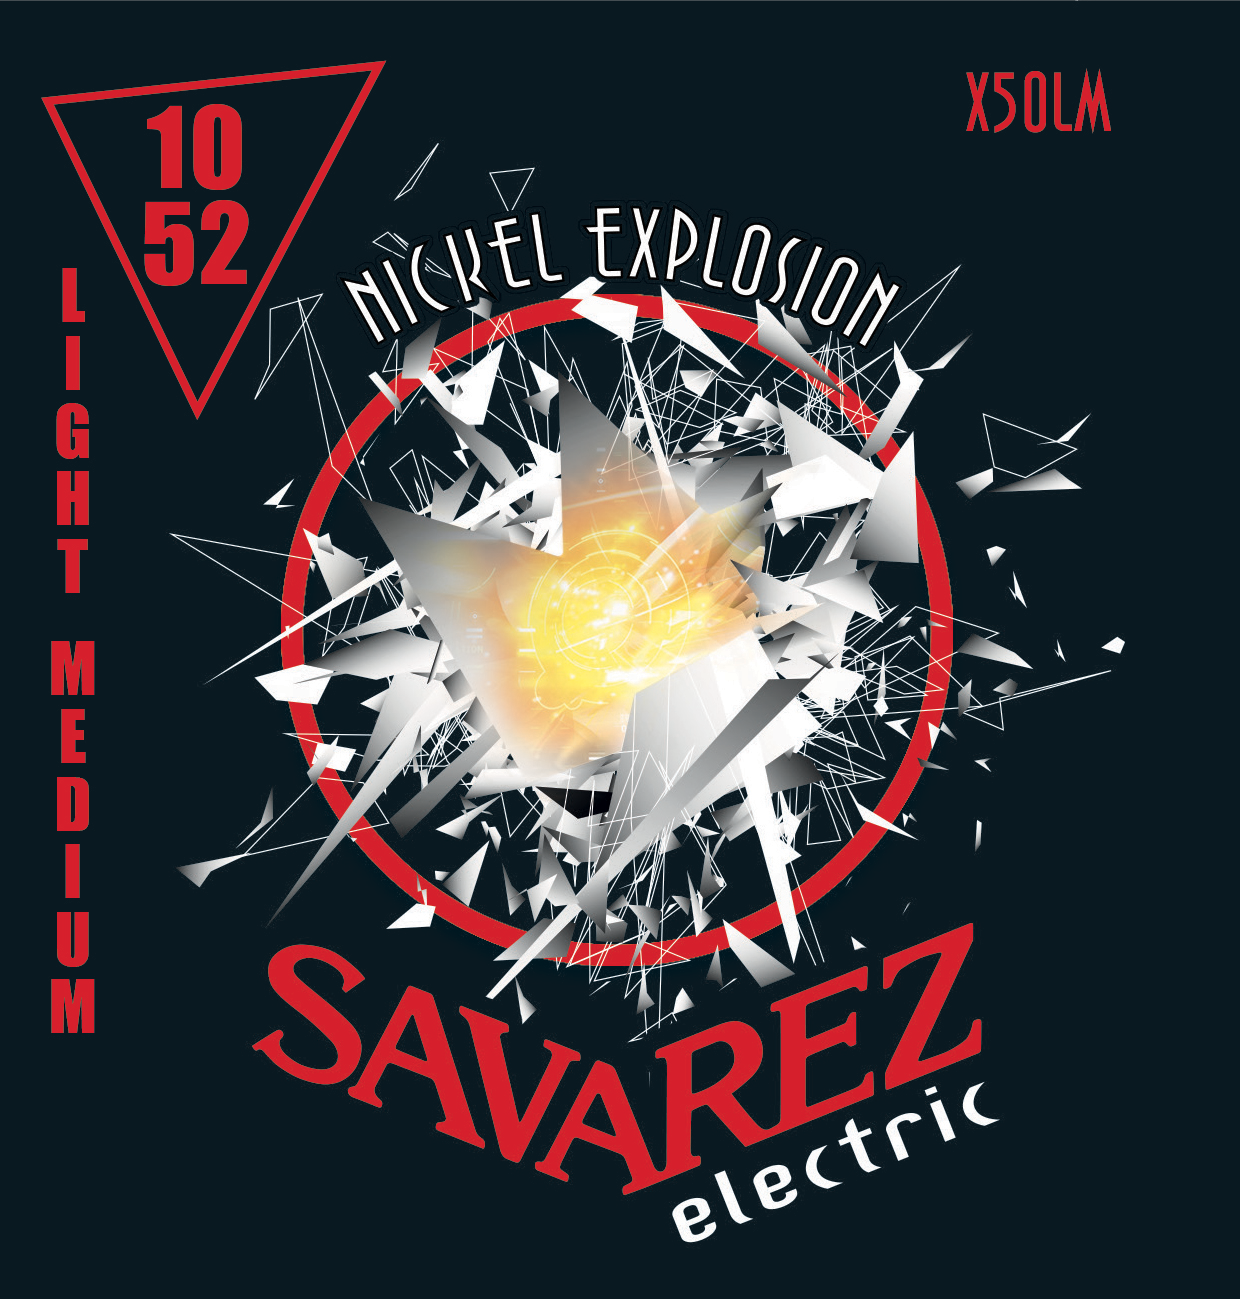 SAVAREZ ELECTRIC EXPLOSION X50LM